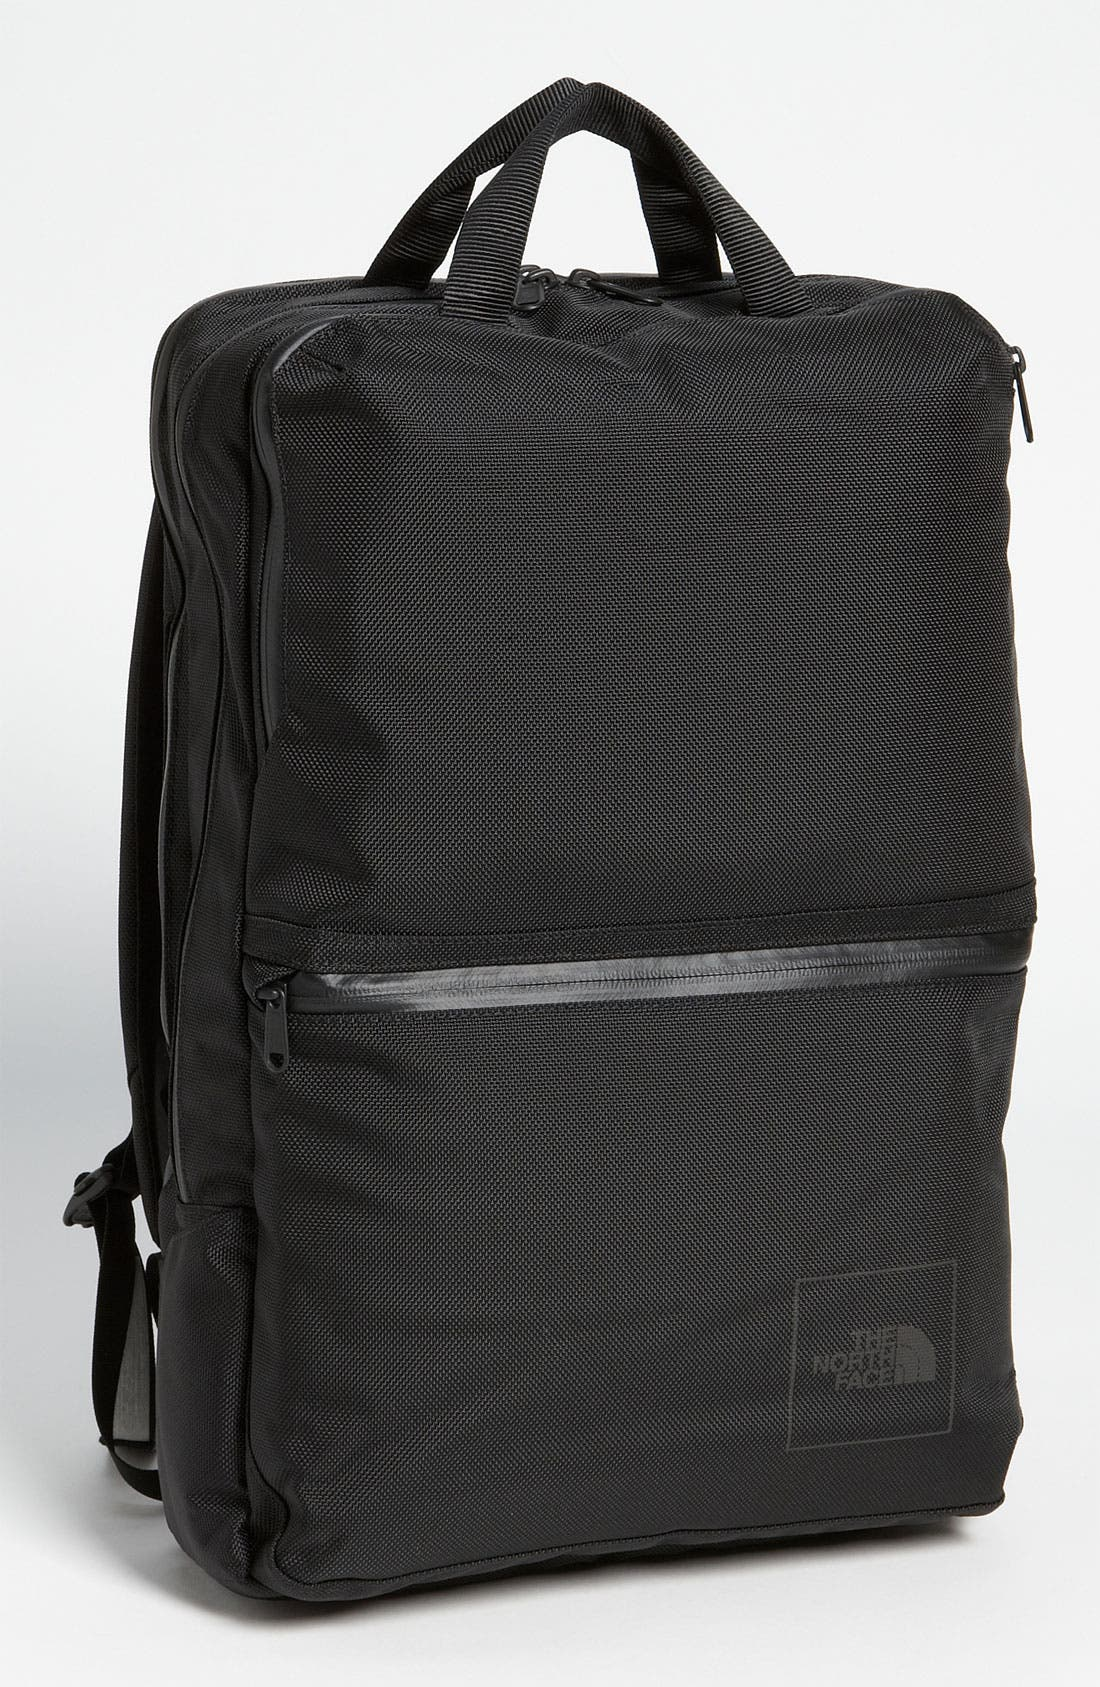 Alternate Image 1 Selected - The North Face 'Shuttle' Backpack